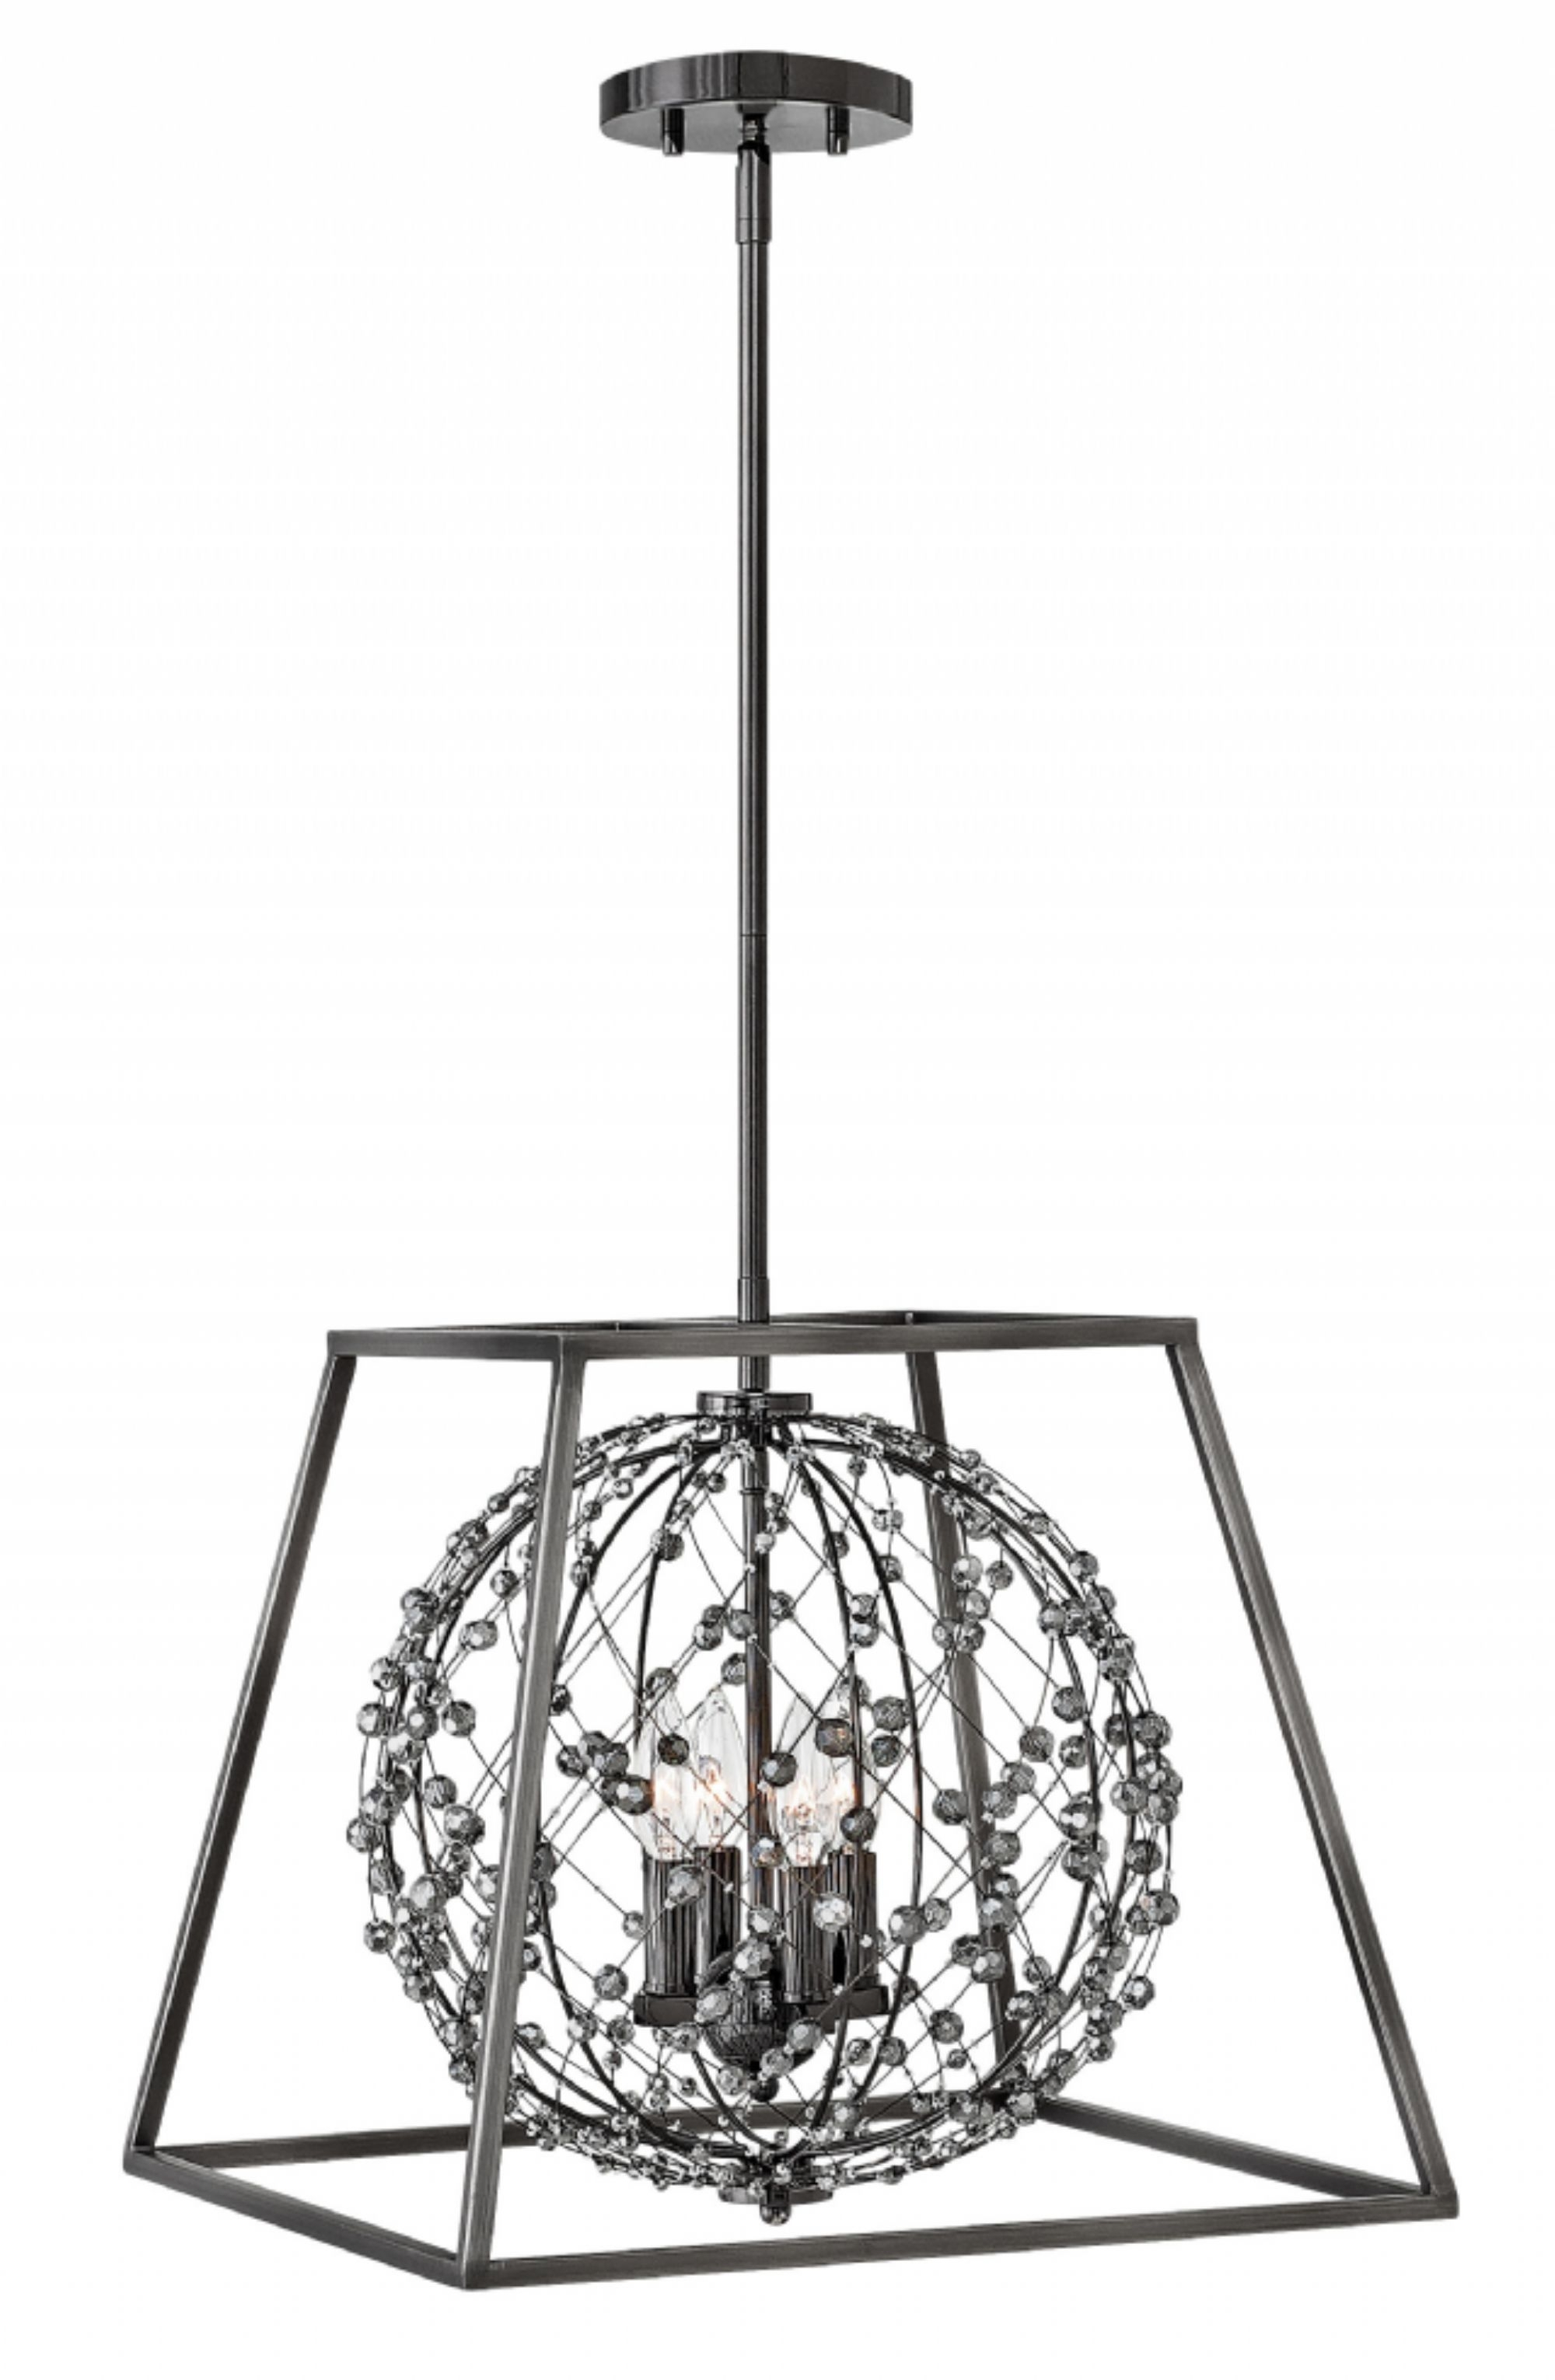 Hinkley Lighting – Artemis Fr48204Ani | Lights | Pinterest | Hinkley With Contemporary Hinkley Lighting (#7 of 15)